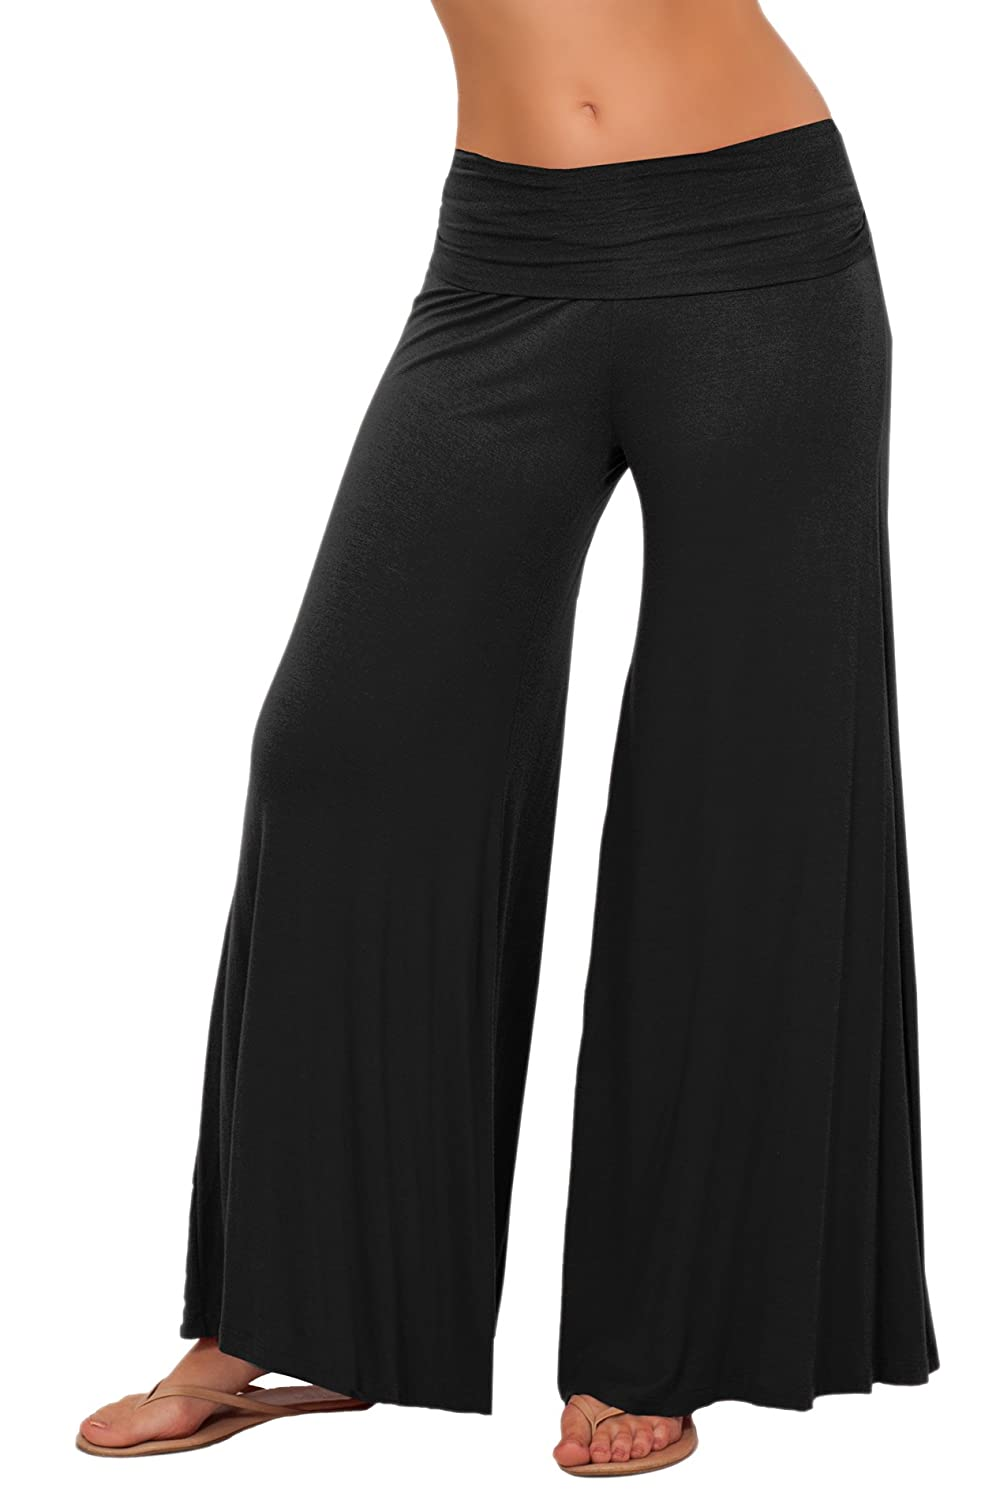 Long Gaucho Boho Flare Elephant Wide Leg Chic Sophisticated Casual Sassy Pants Black Small P4036 BLACK S